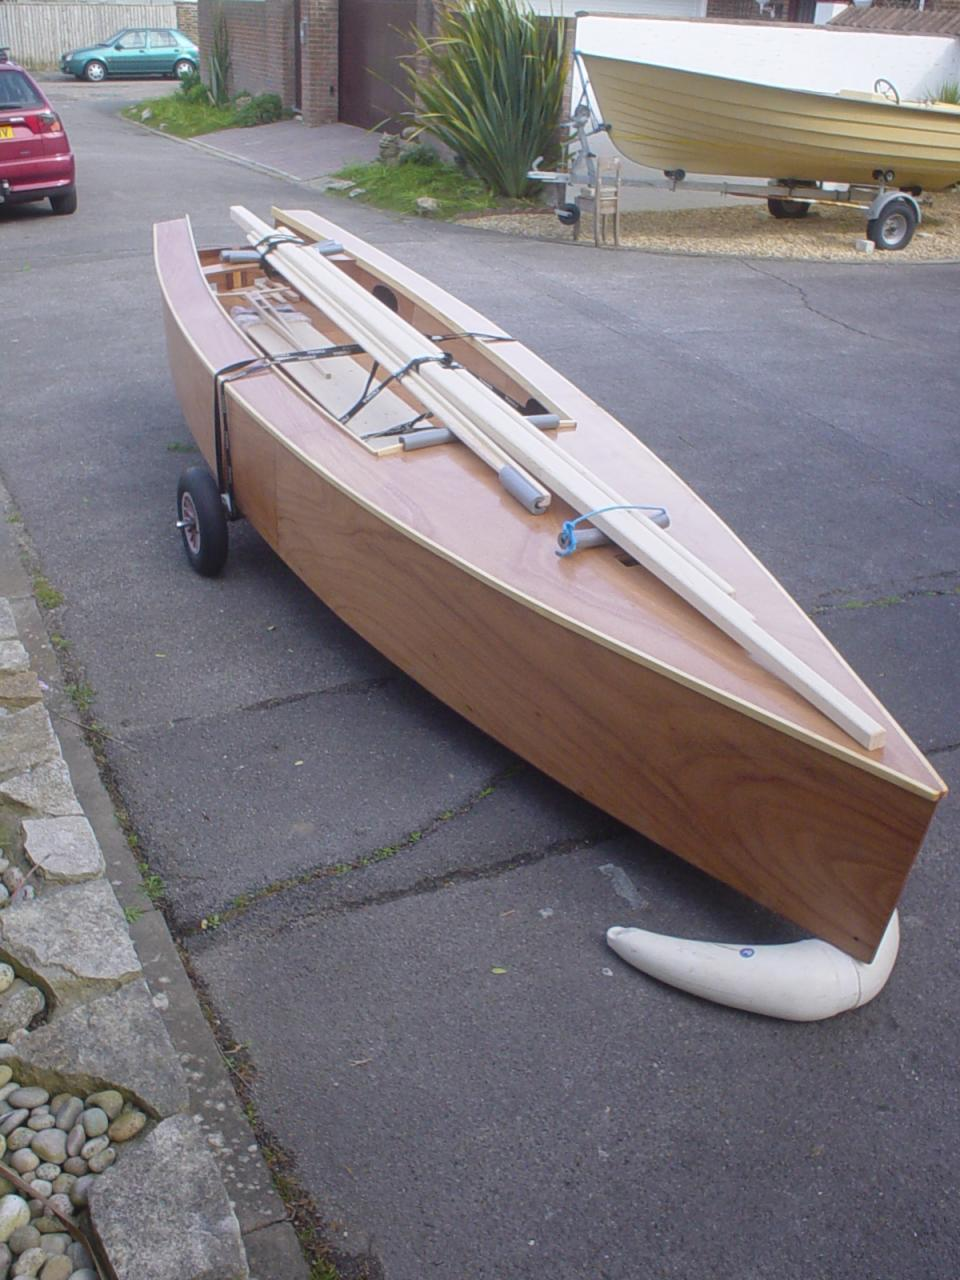 Carollza: Learn Plywood sailing dinghy plans